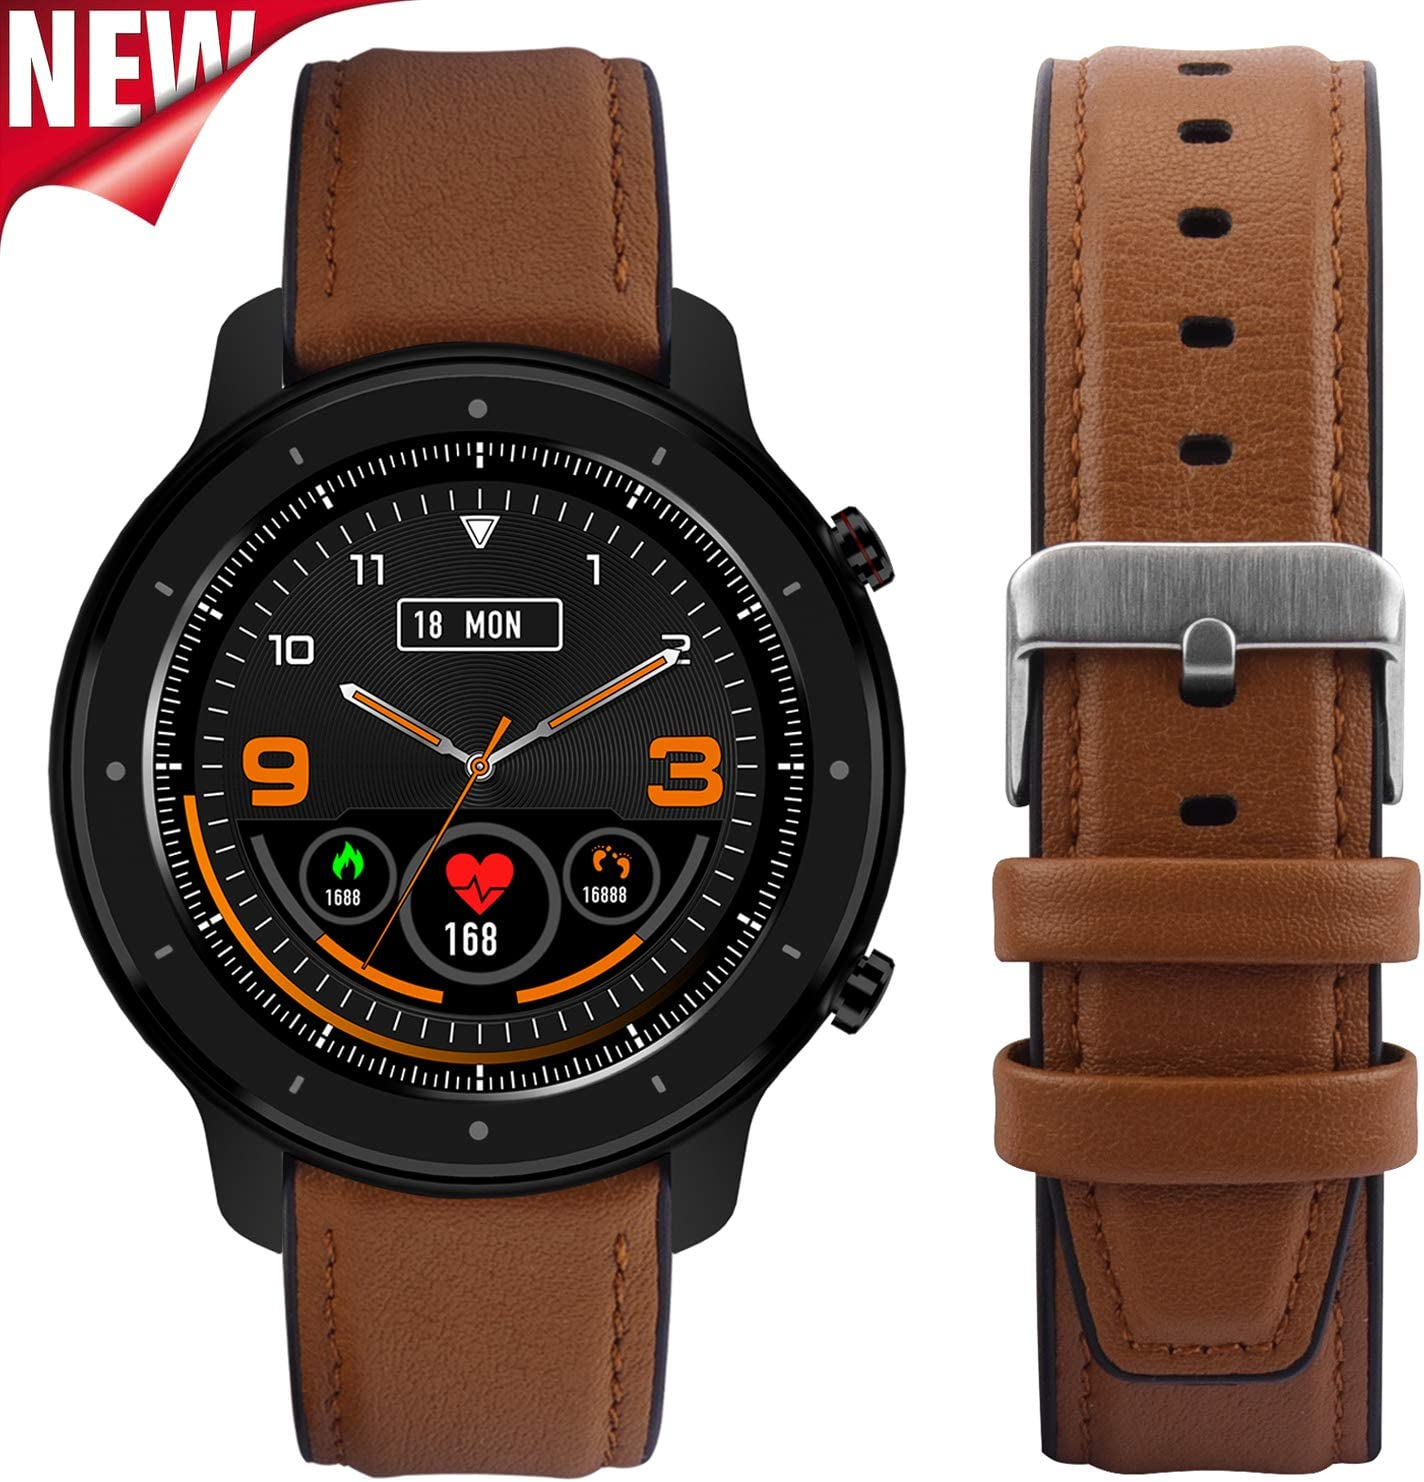 Fullmosa 【2020 Nuevo】 Reloj Inteligente, Smart Watch, Full-Touch Fitness Tracker con Frecuencia Cardíaca Monitor de Presión Arterial SoP2, 1.3 Pulgadas Activity Tracker Andriod iOS